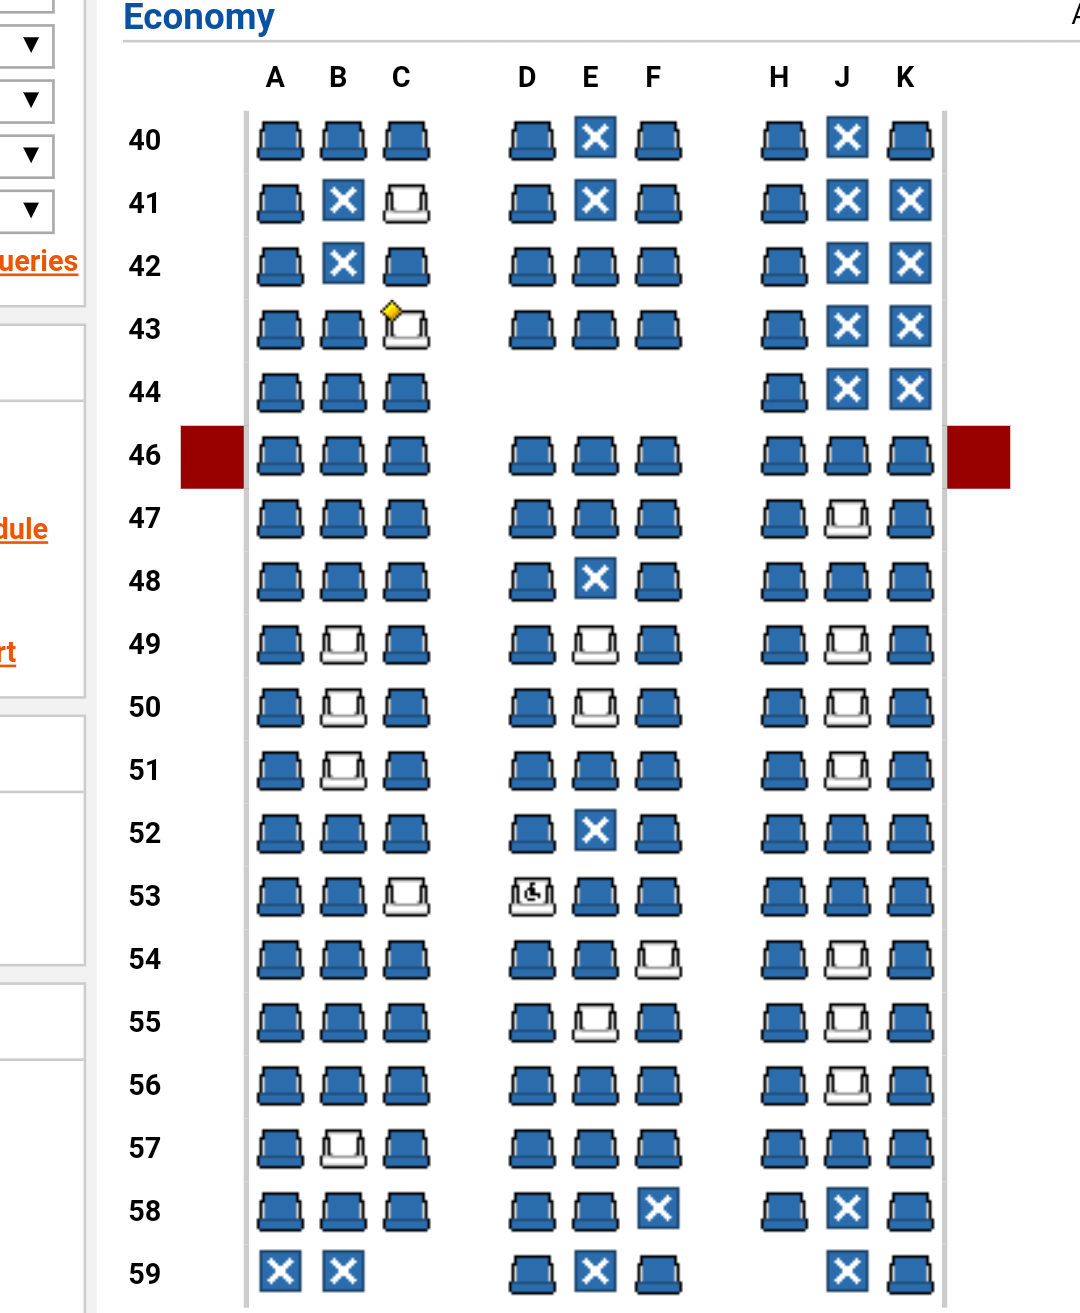 ExpertFlyer seat map reflects all of the blocked economy seats.